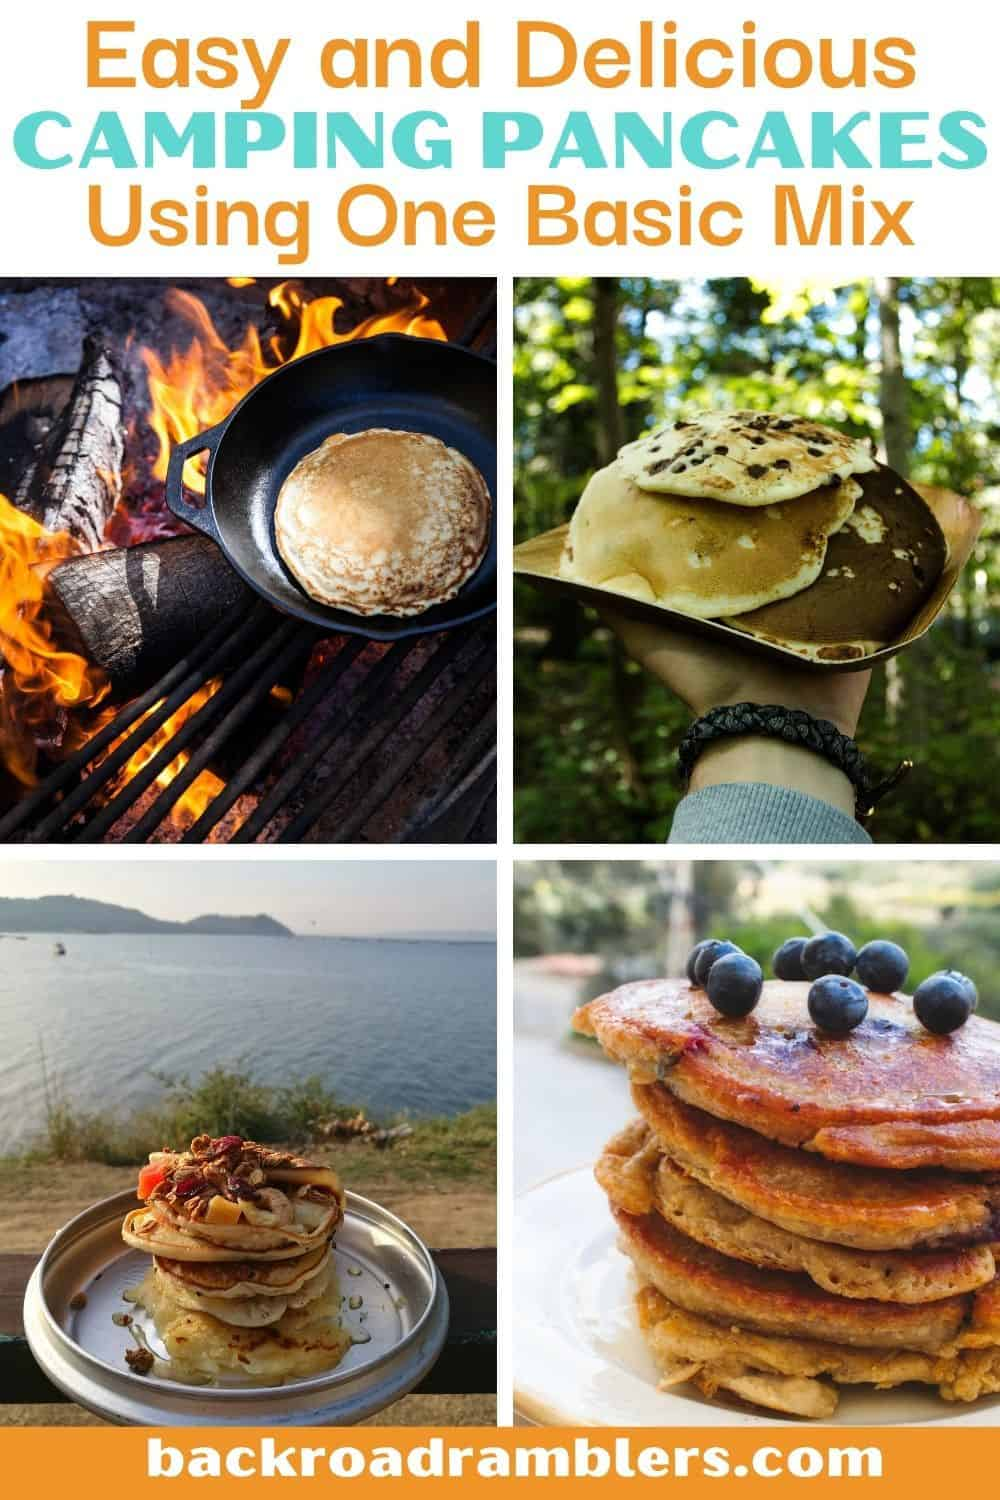 A collage of photos featuring camping pancakes.